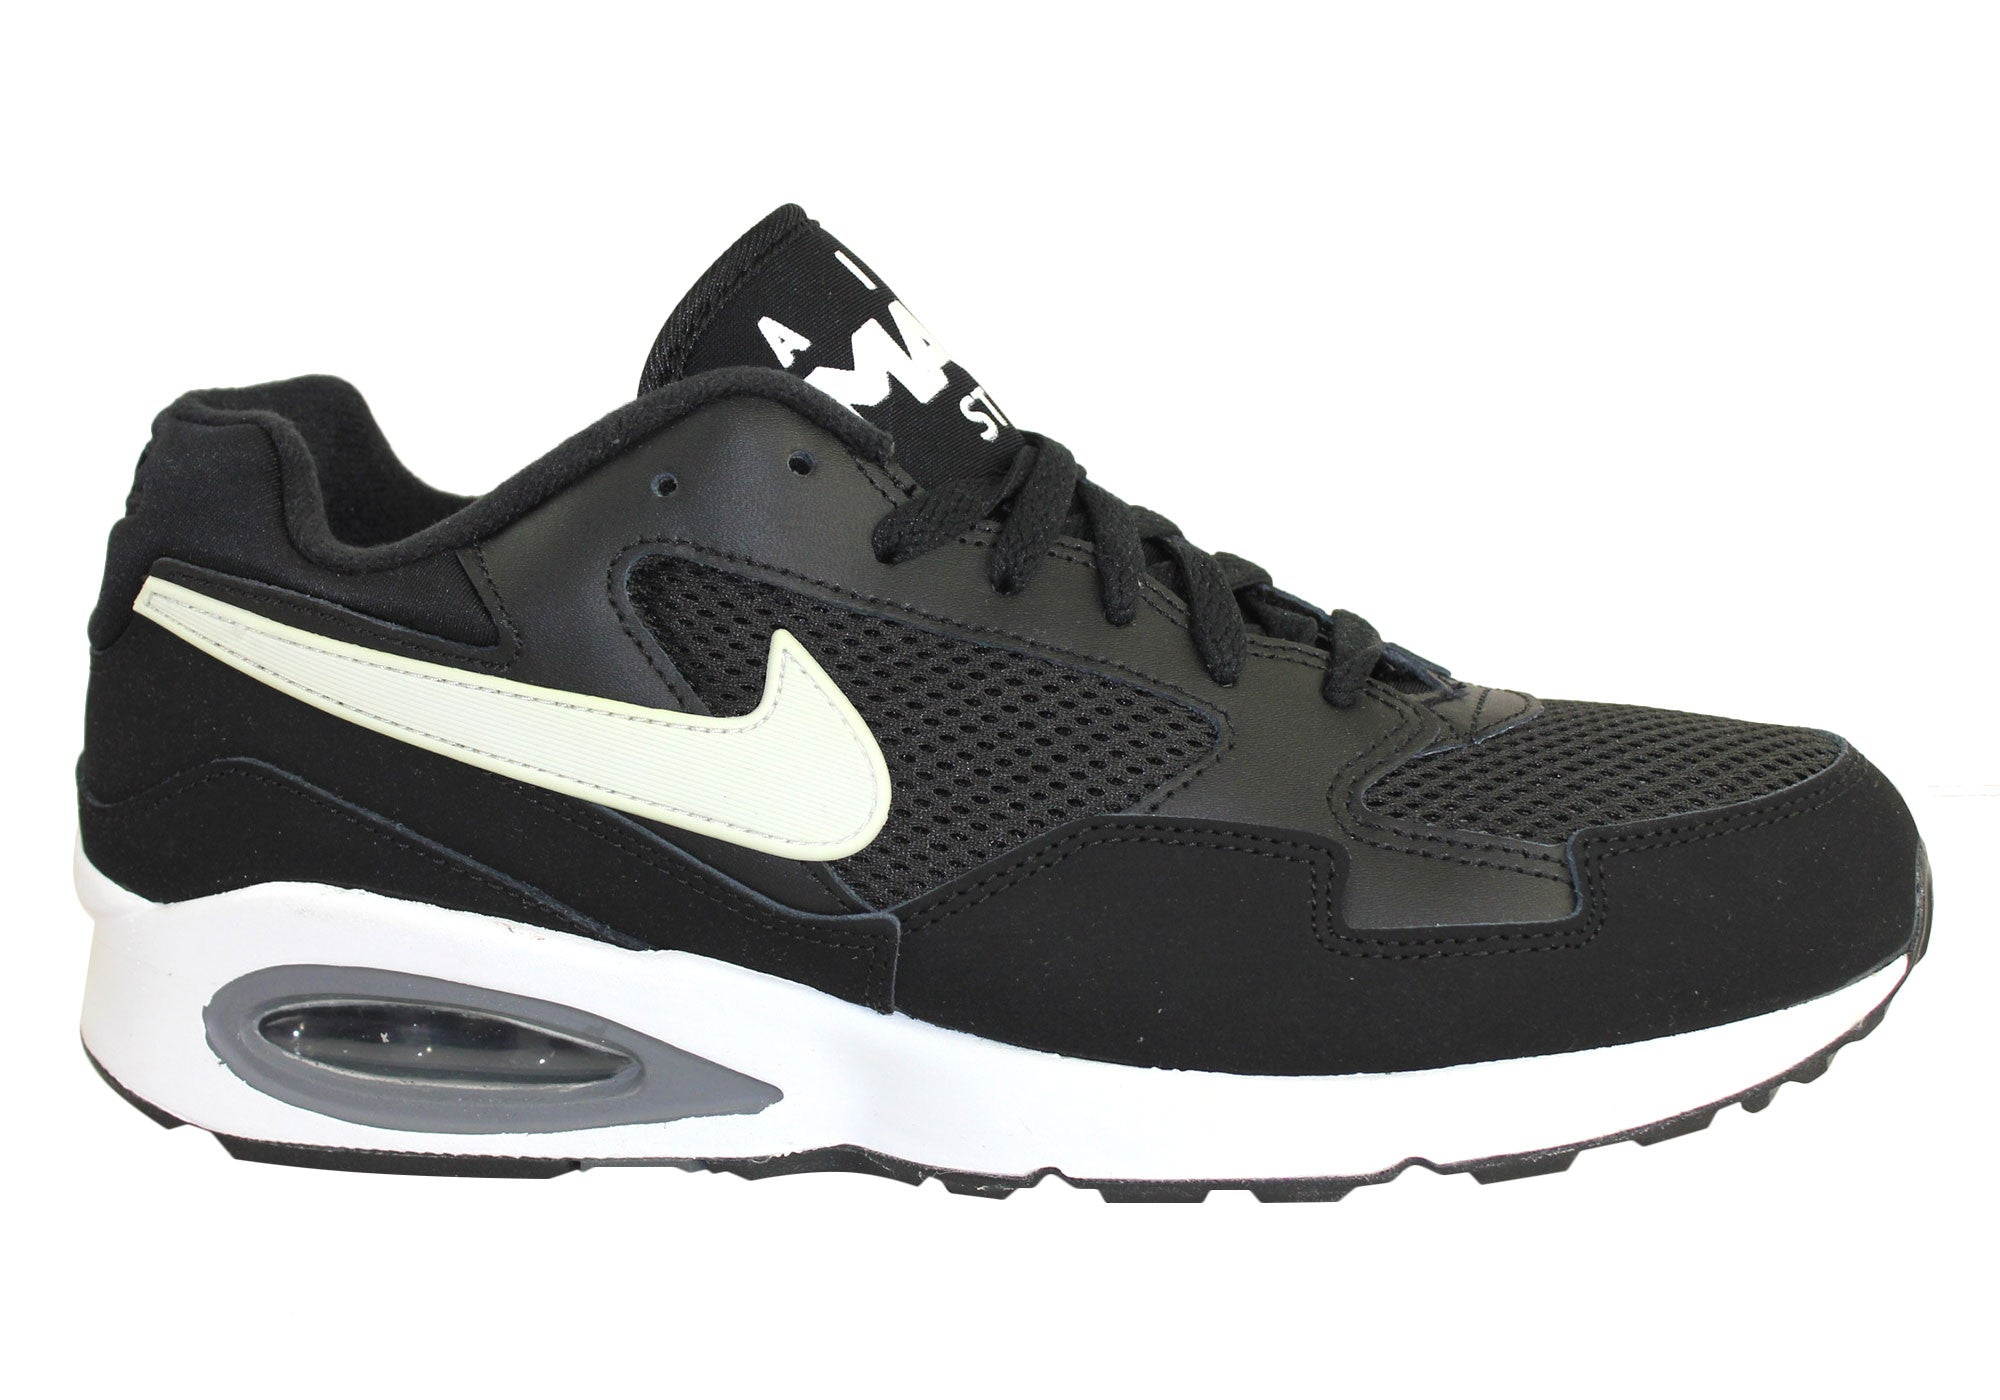 807c6f330f89 Nike Air Max ST Mens Running Sport Shoes